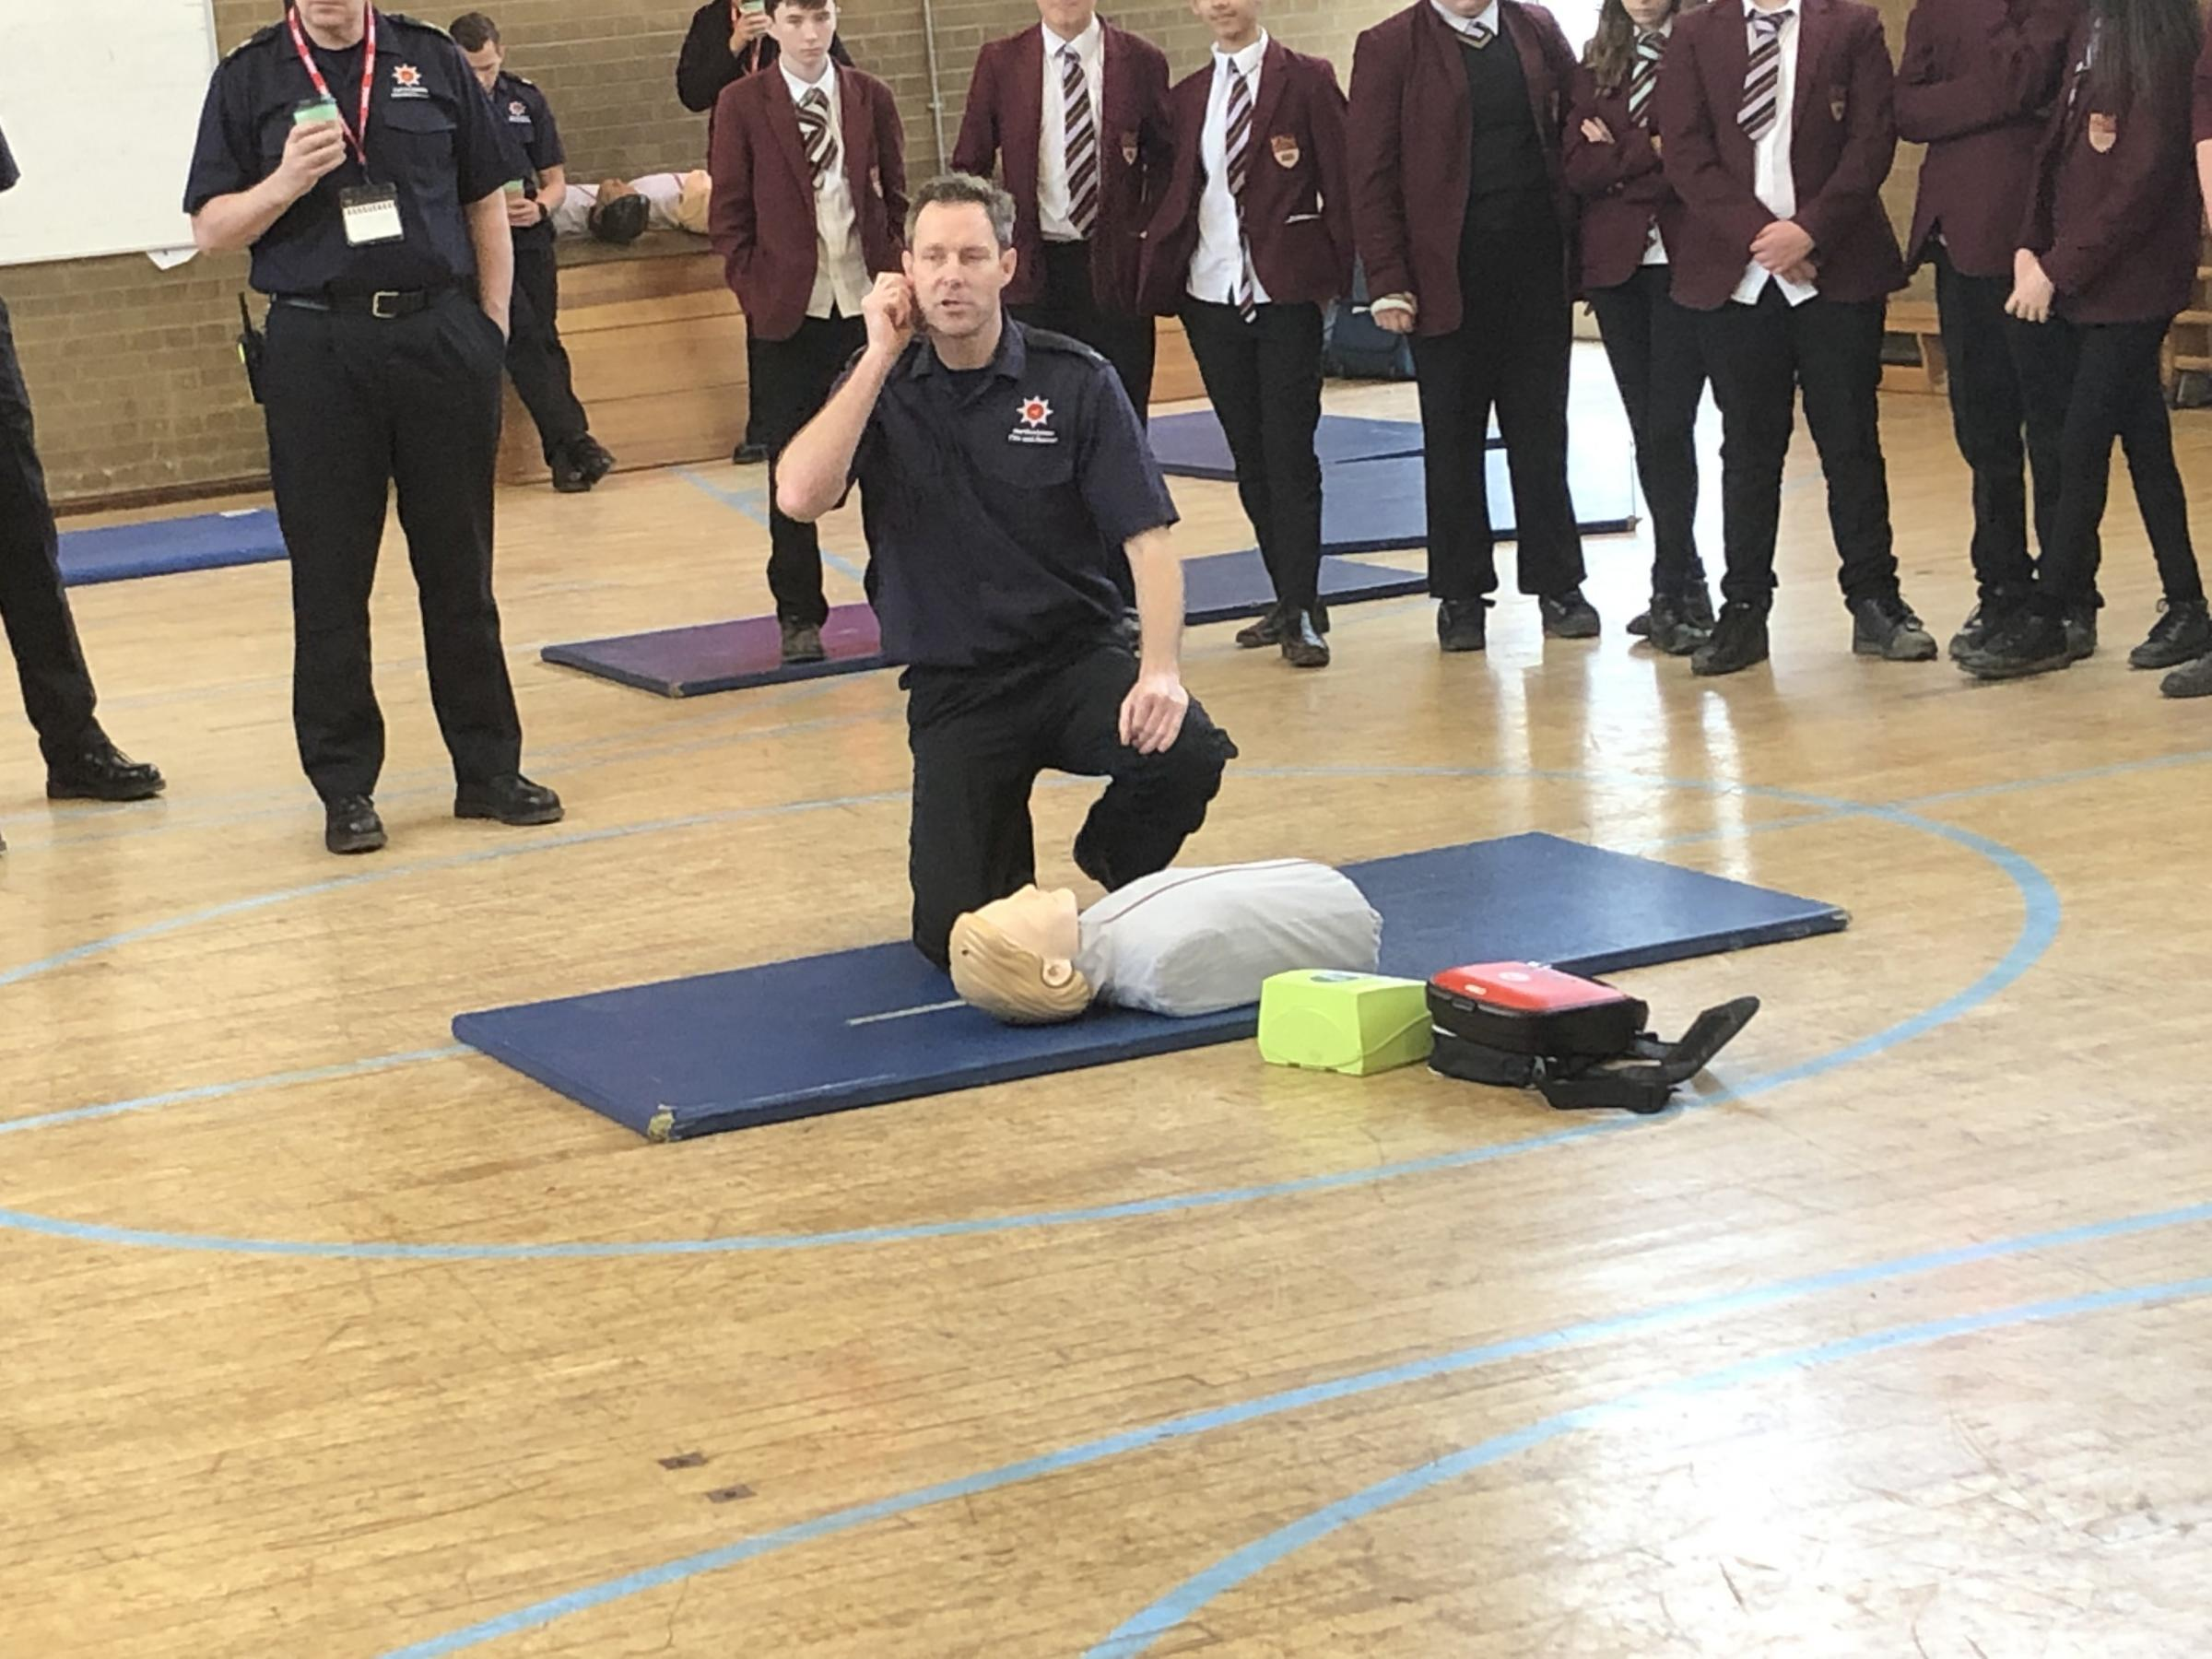 A fire officer gives first aid and CPR